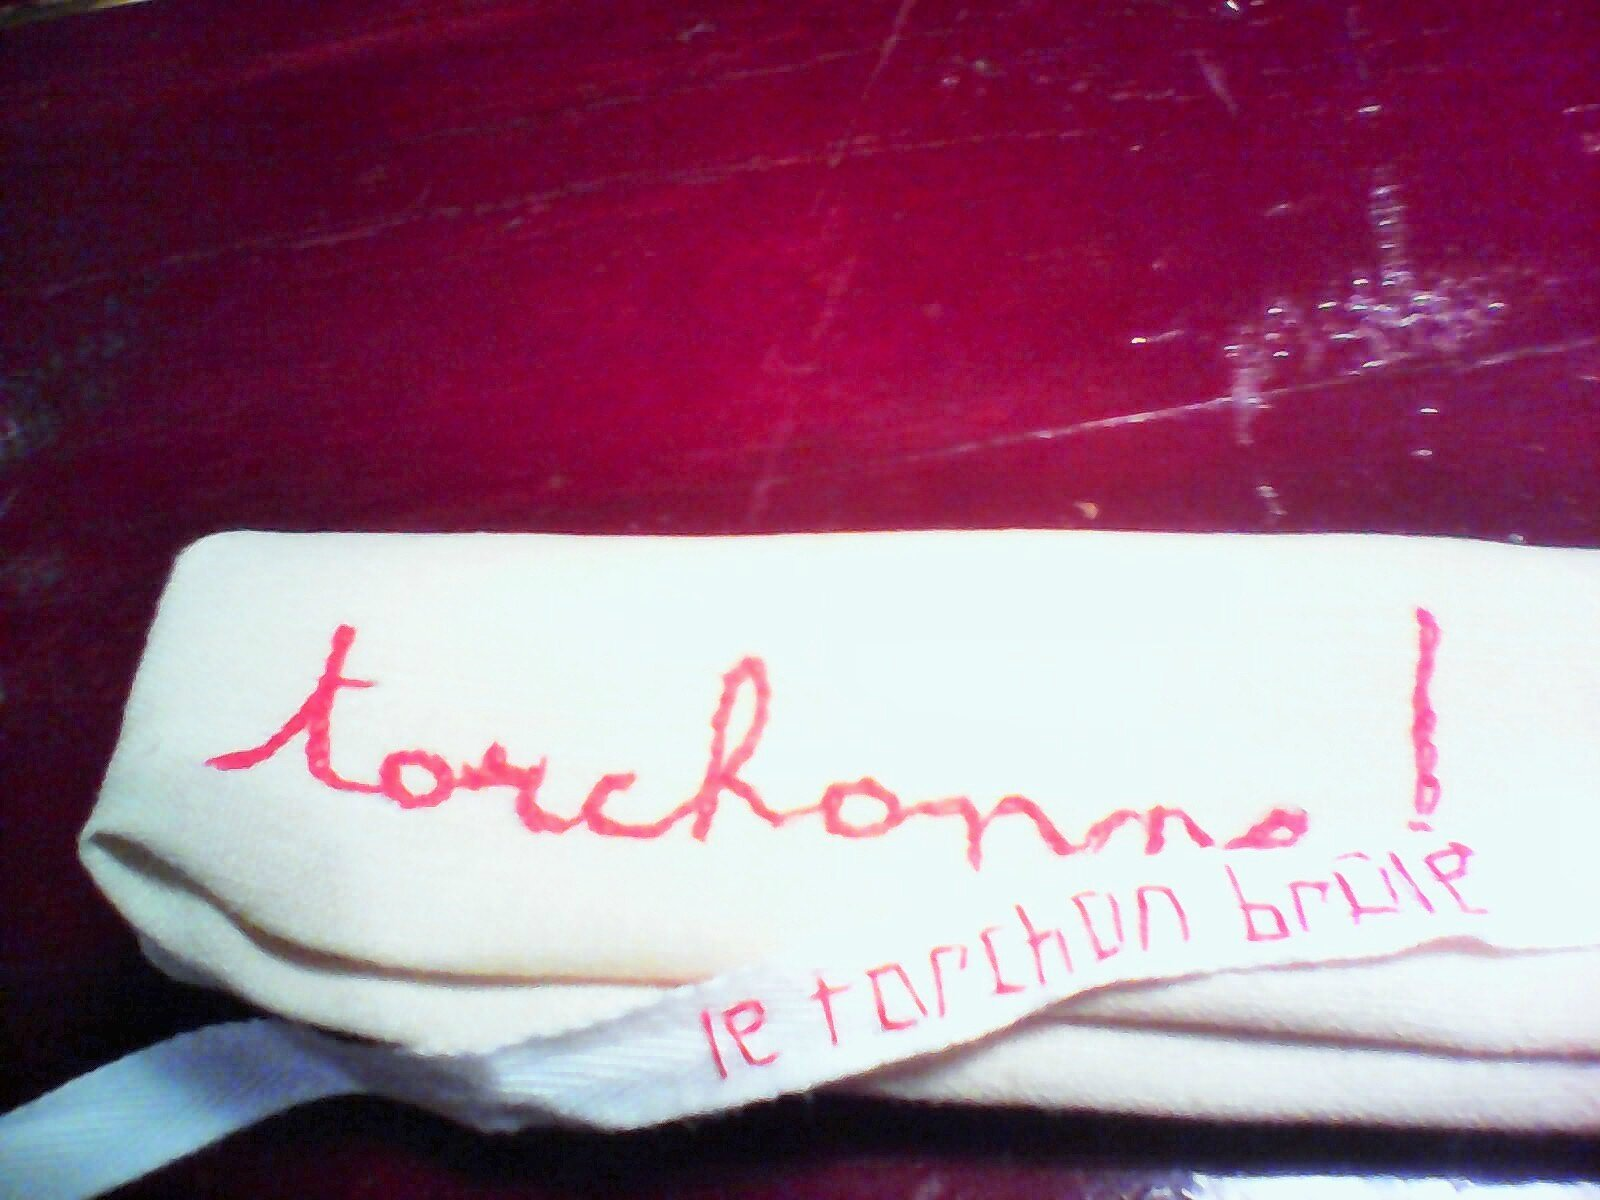 On torchonne ...